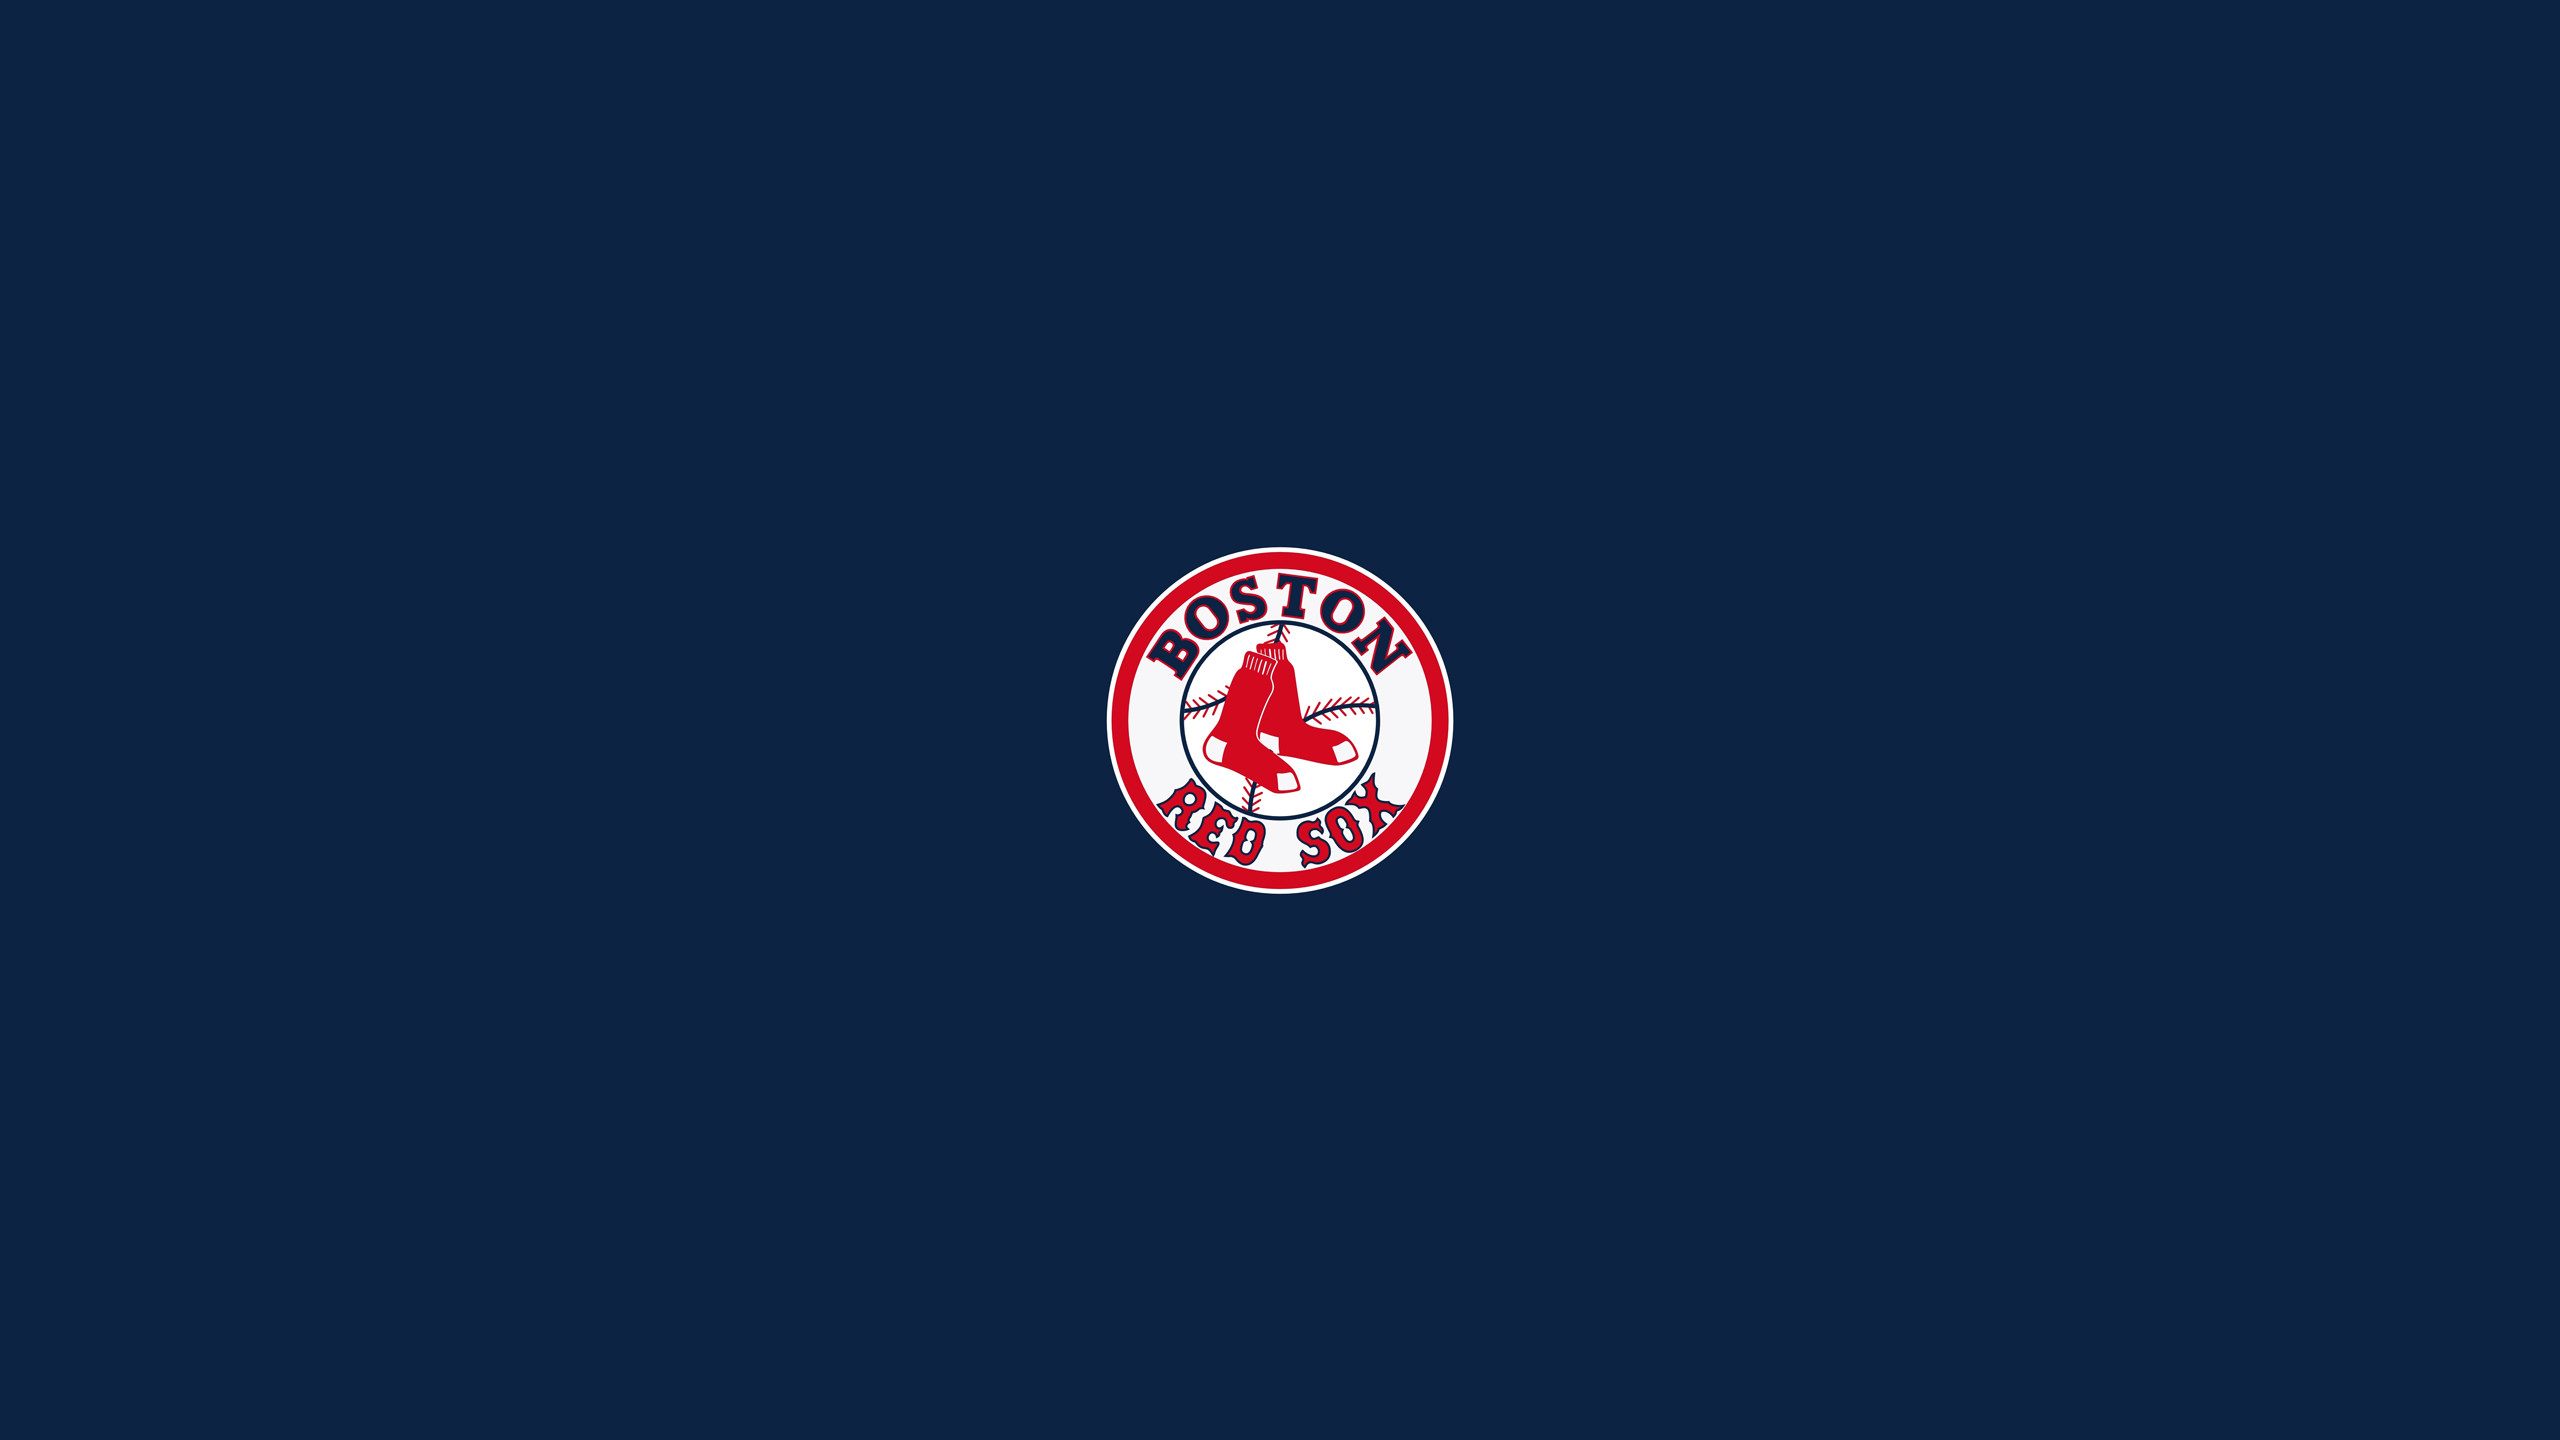 2560x1440 - Boston Red Sox Wallpaper Screensavers 21